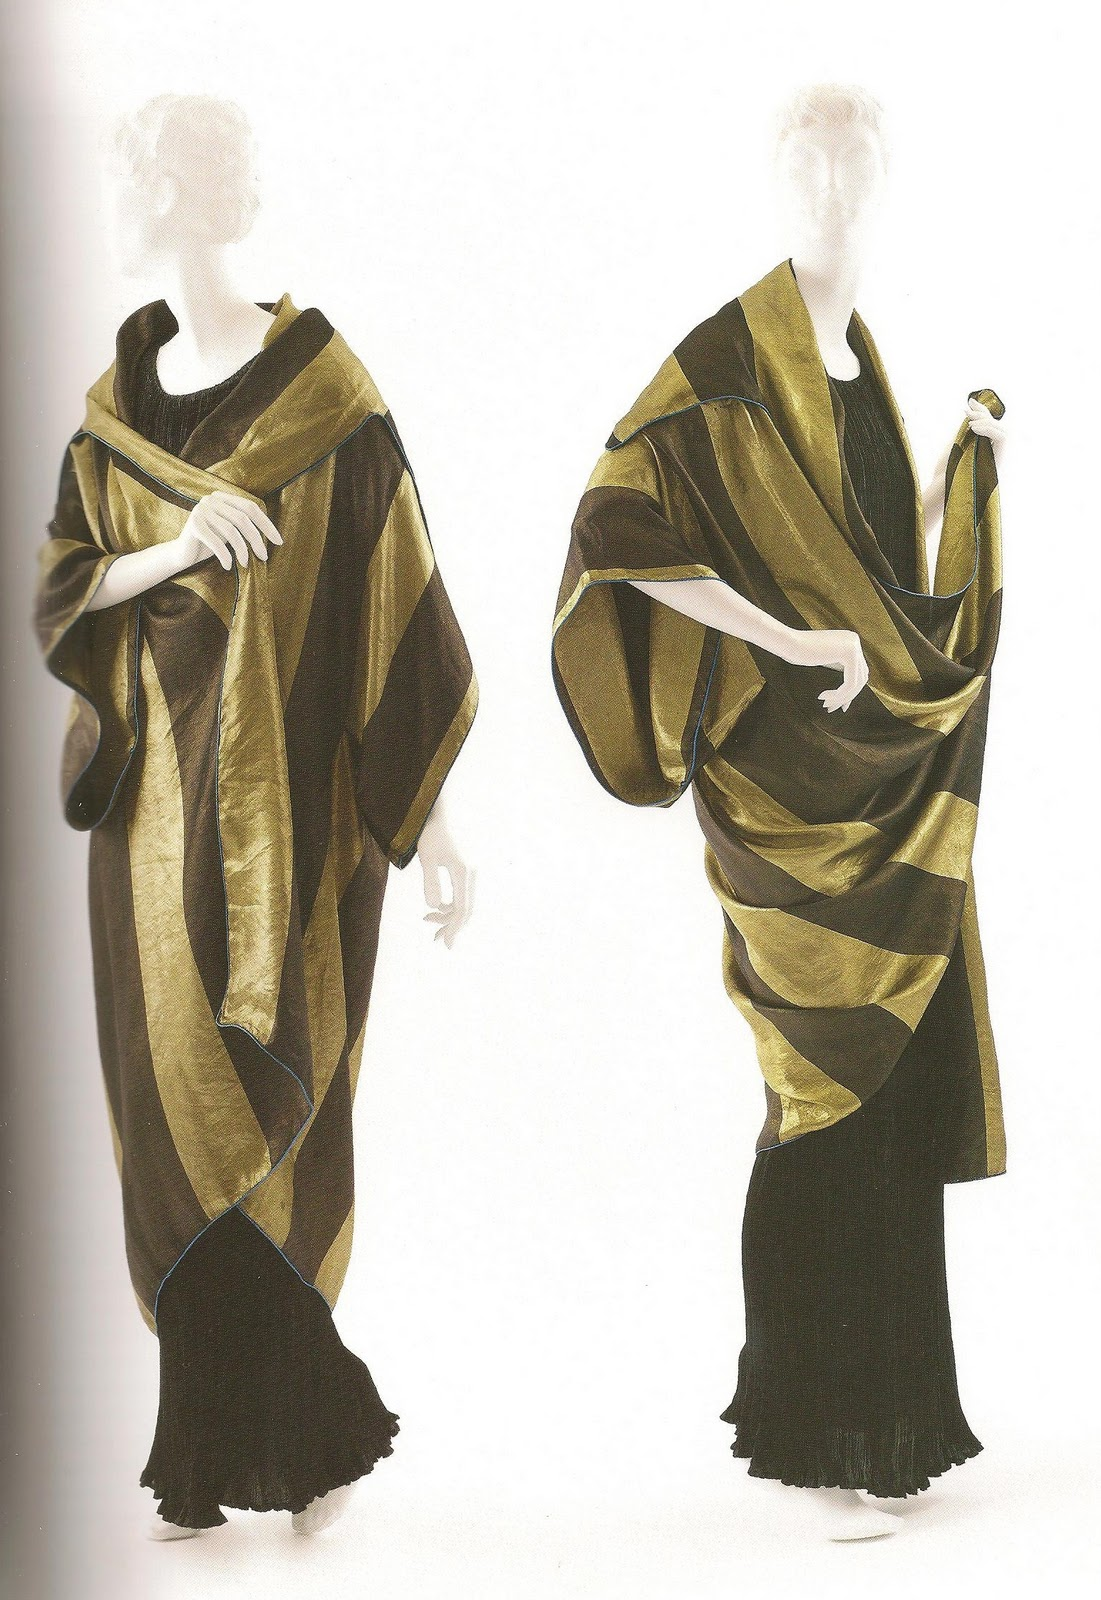 Medieval fashion history. Reign of Charles VI and Charles VII Poiret king of fashion book